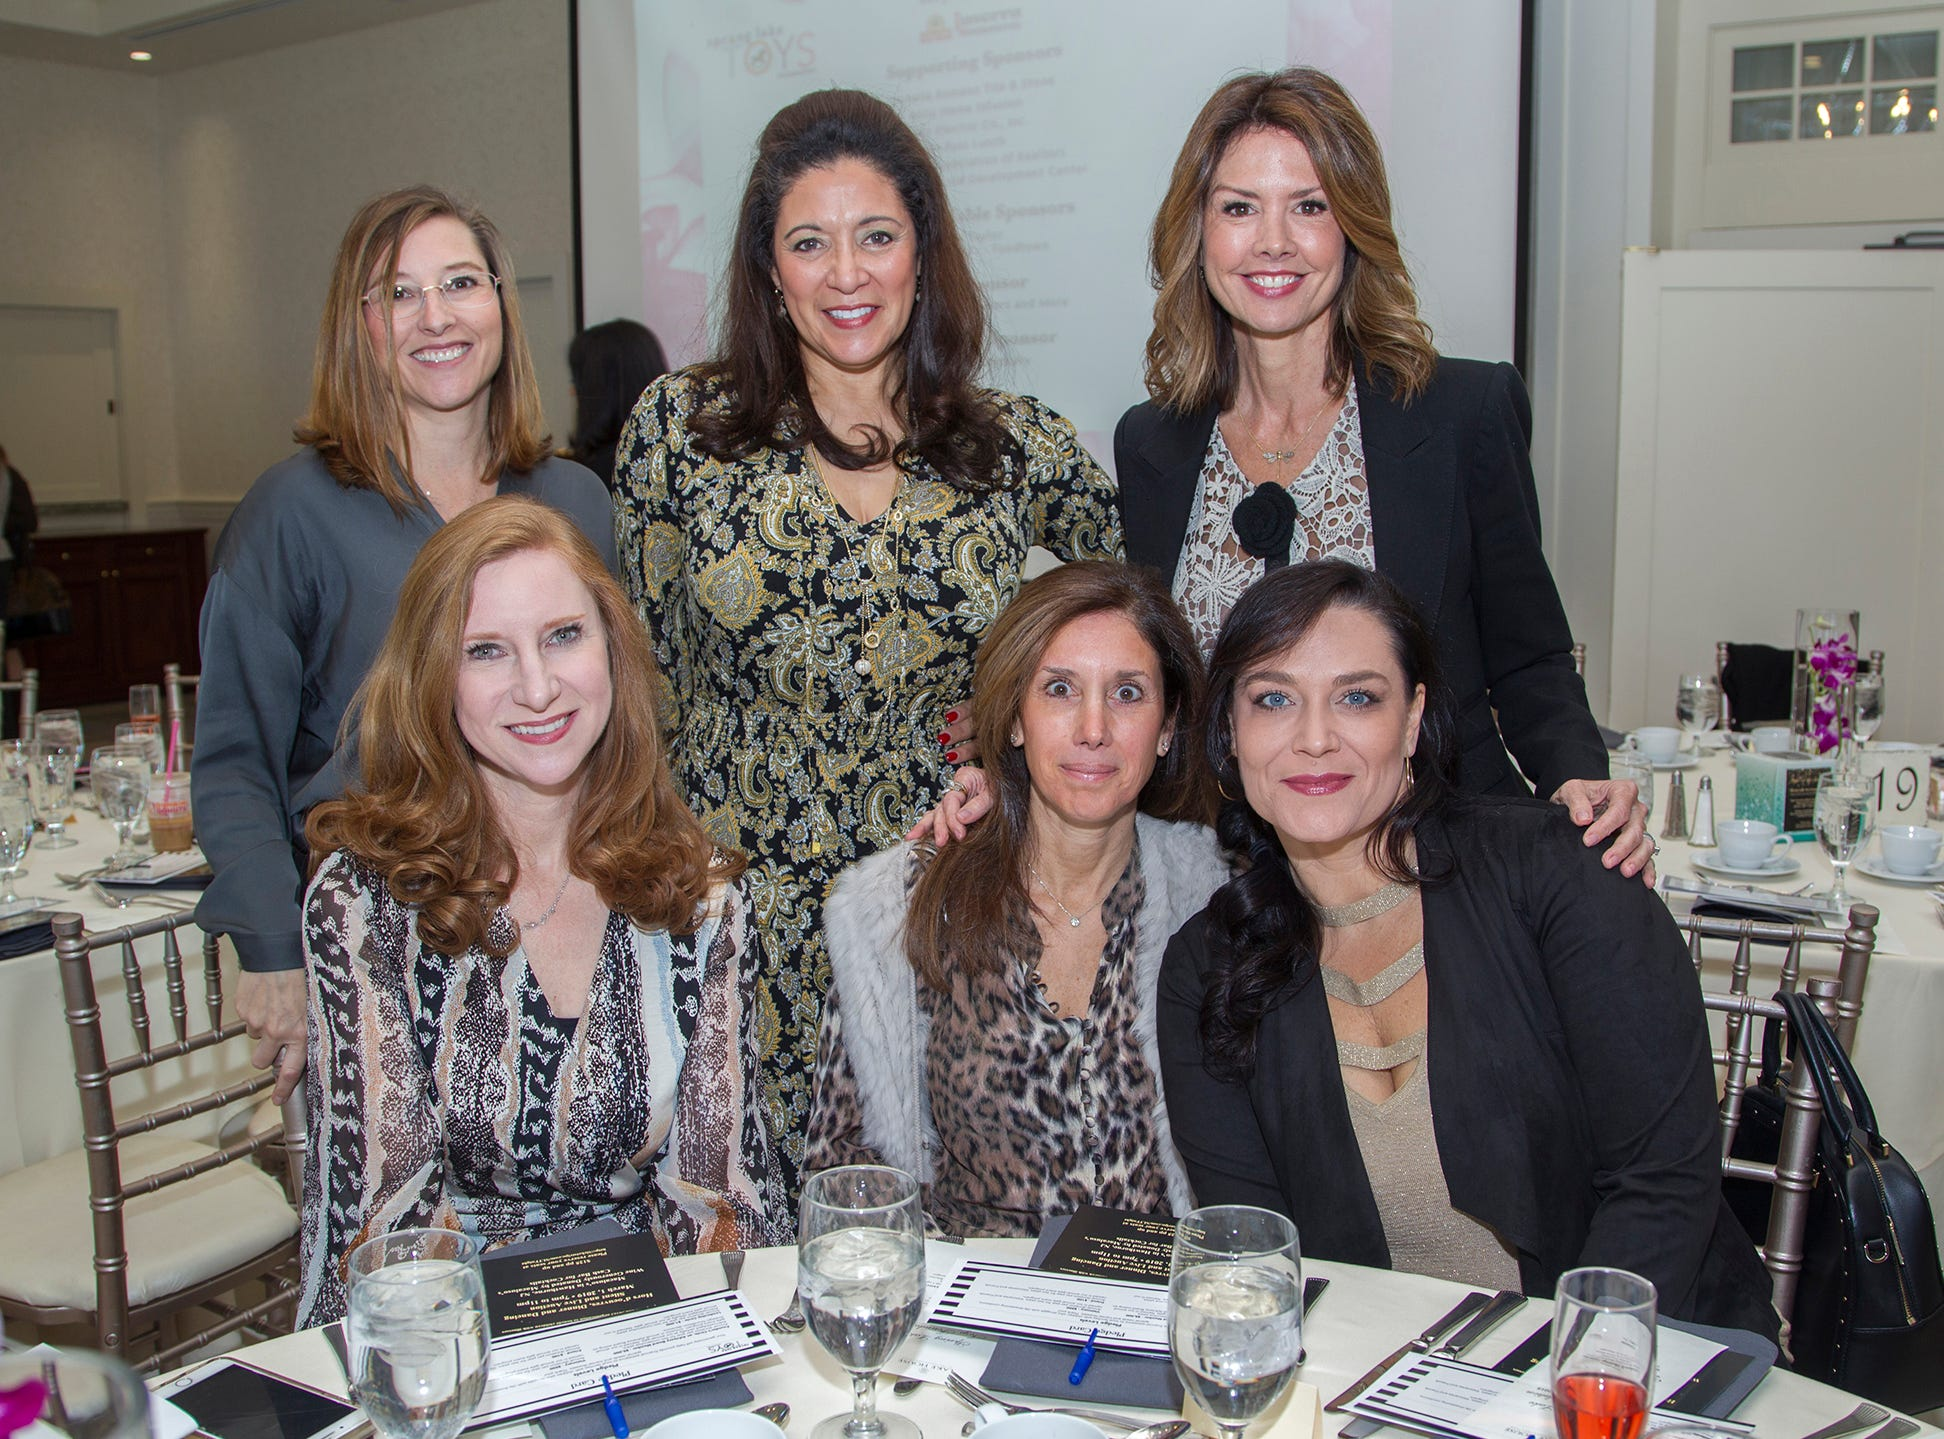 Rosa Riotto, Iliana Mc Ginnis, Marci Hopkin, Melanie Harold, Cynthia Alecci, Danyel Competiello. Spring Lake Toys Foundation held its 3rd annual fundraising gala luncheon at Indian Trail Club in Franklin Lakes. The luncheon fundraiser raises funds for children with illnesses. 10/18/2018